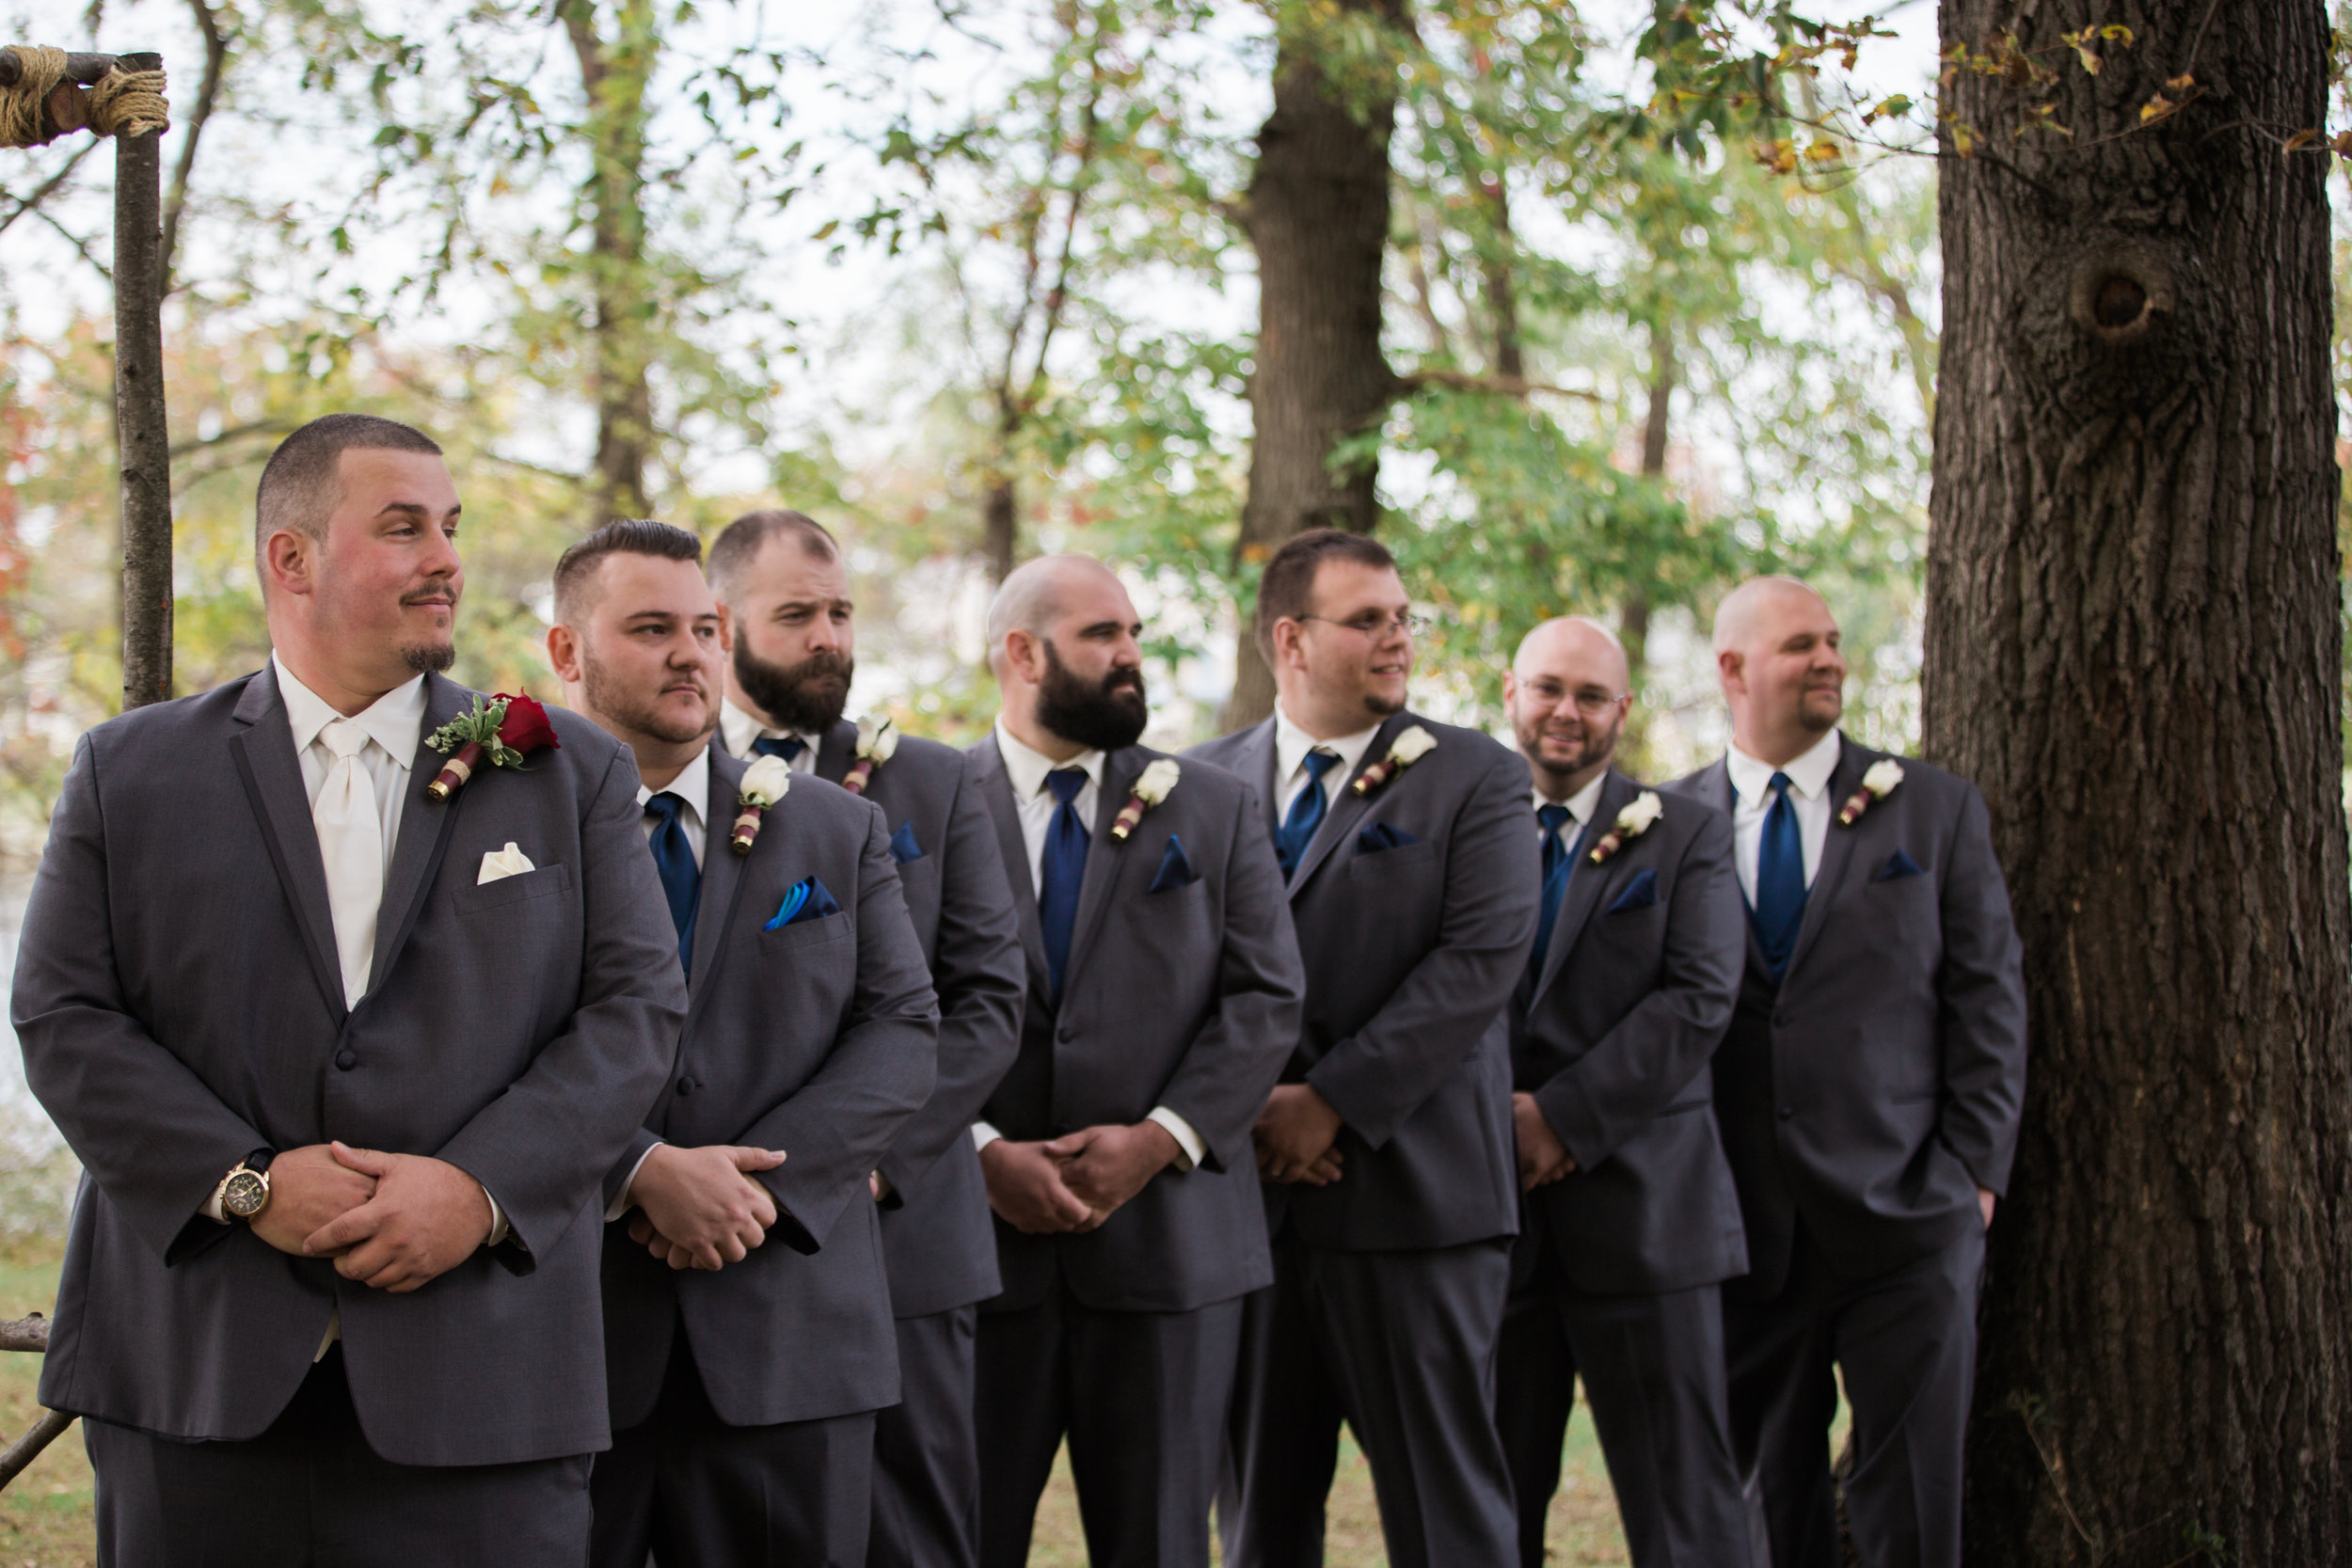 Sparrows Point Country Club Maryland photography Wedding Photographers Megapixels Media-46.jpg